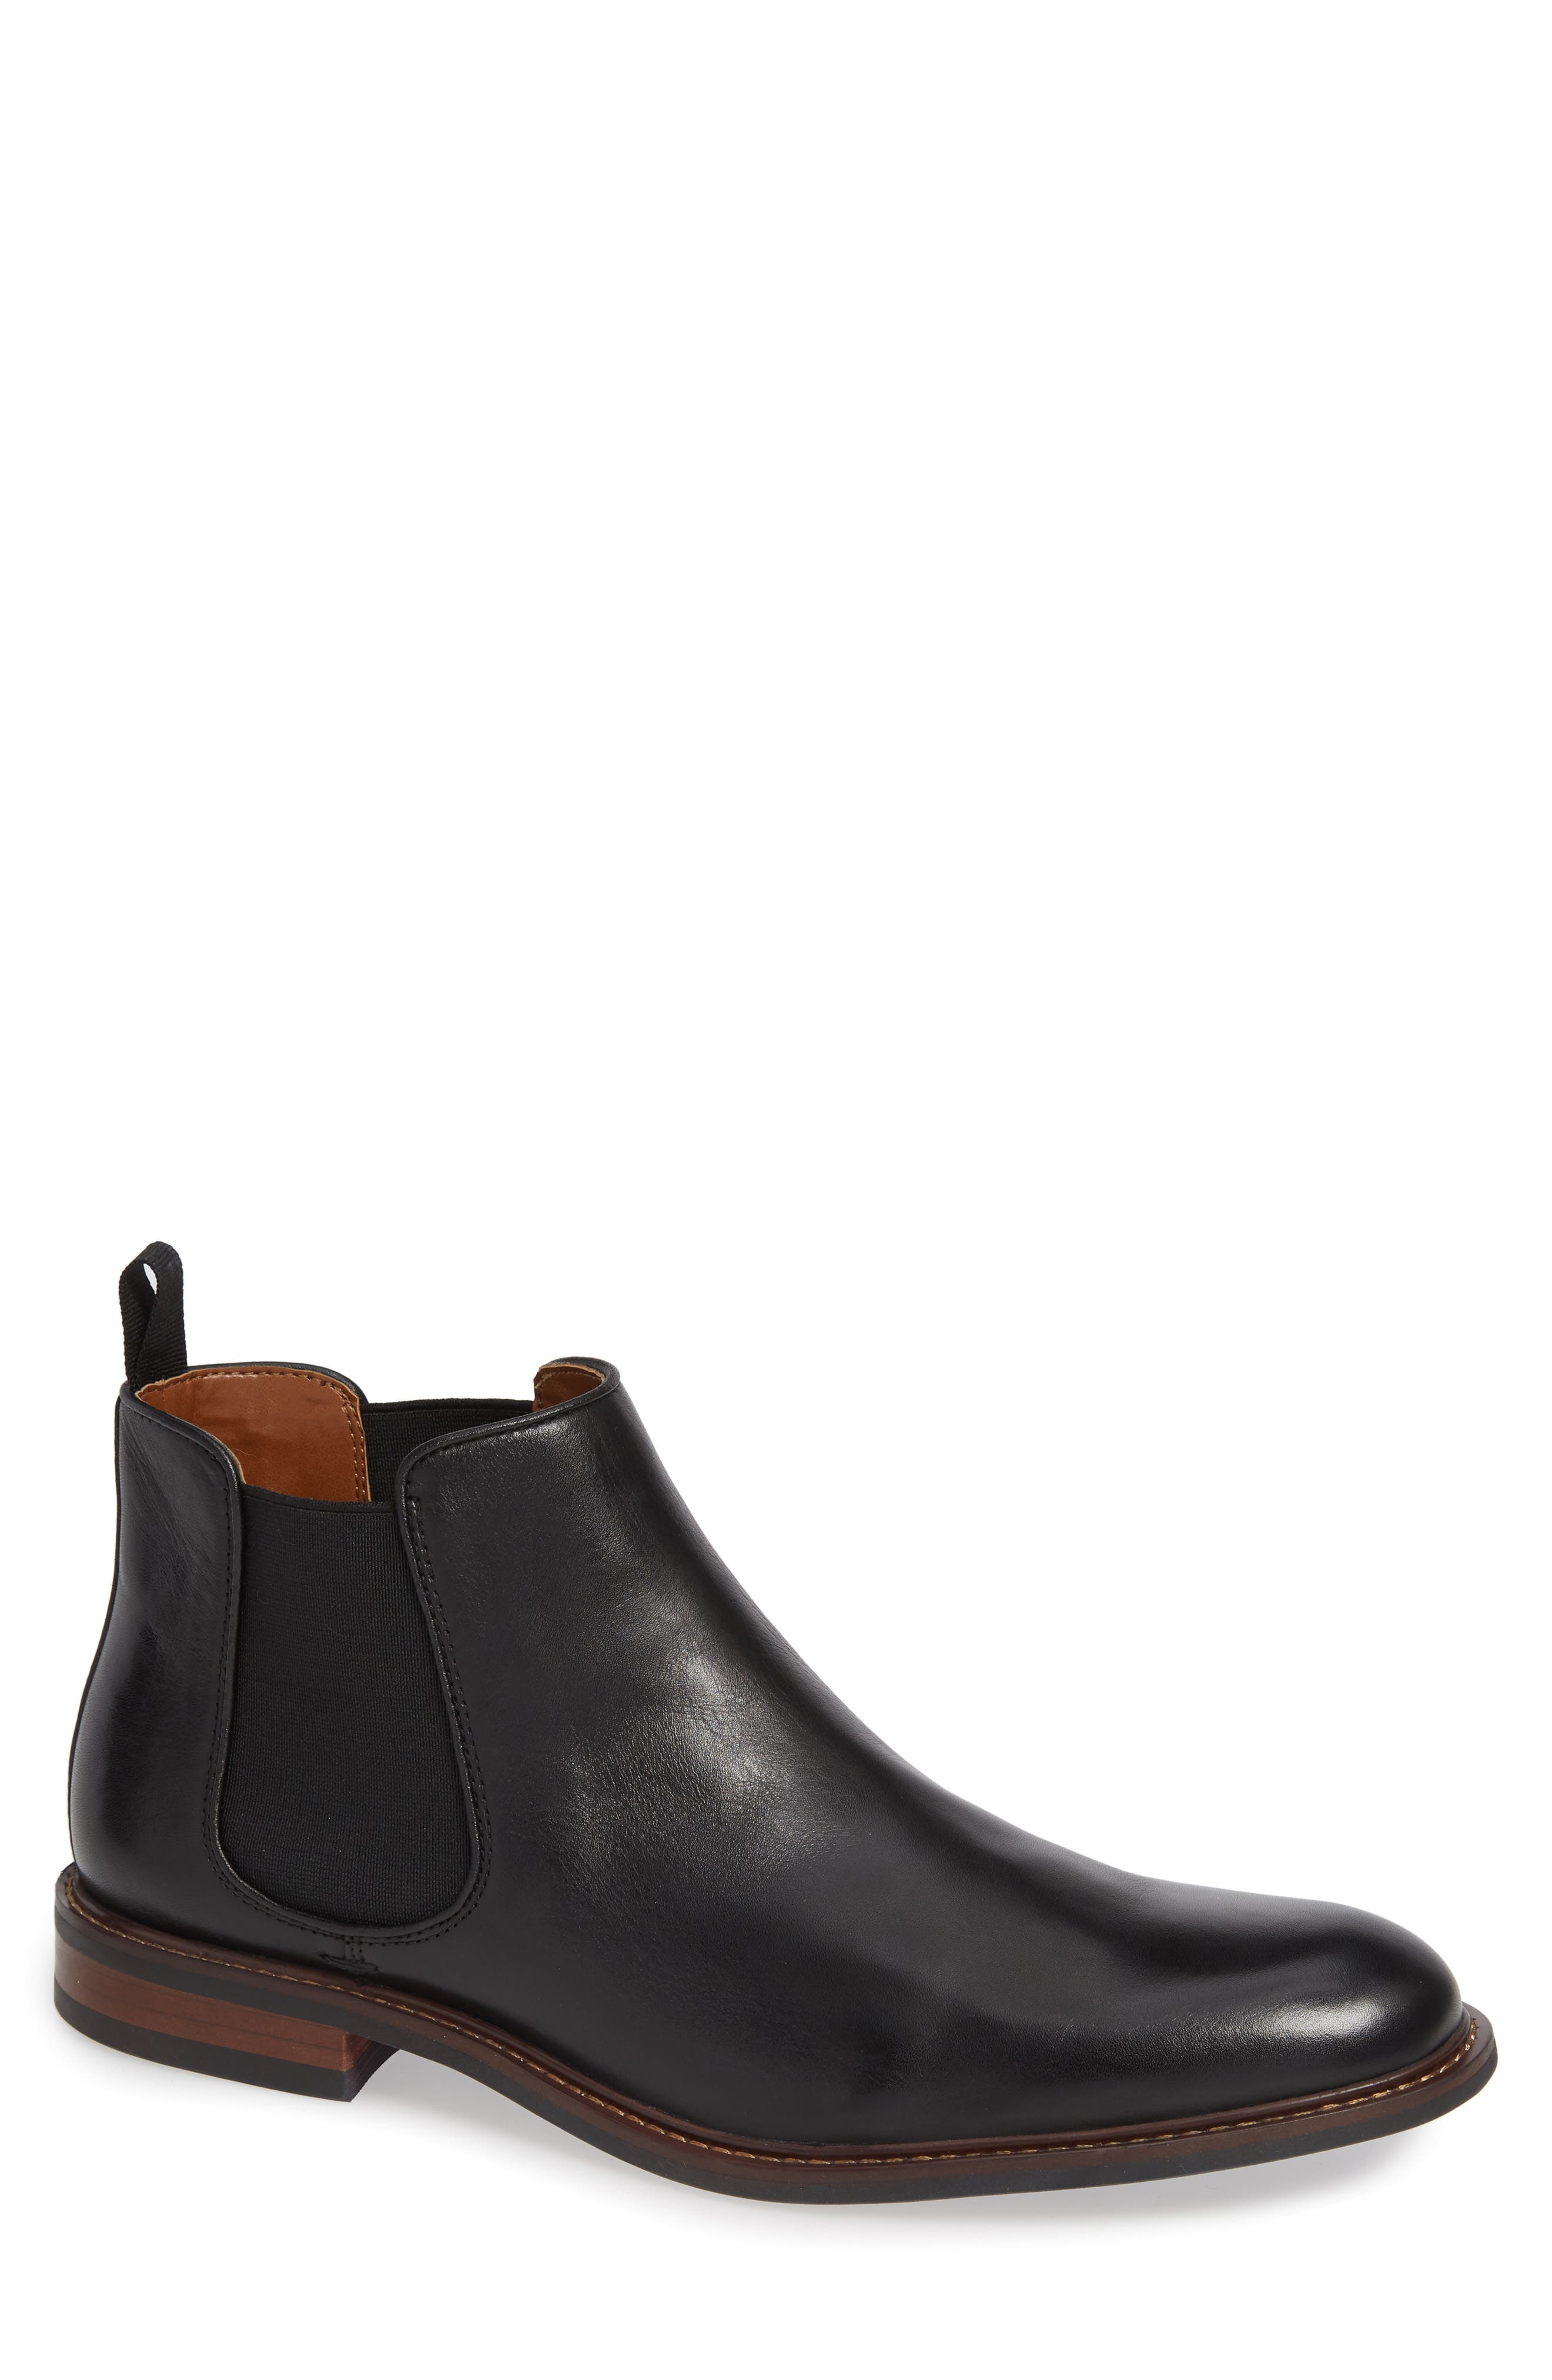 NORDSTROM MEN'S SHOP, David Chelsea Boot, Main thumbnail 1, color, BLACK LEATHER